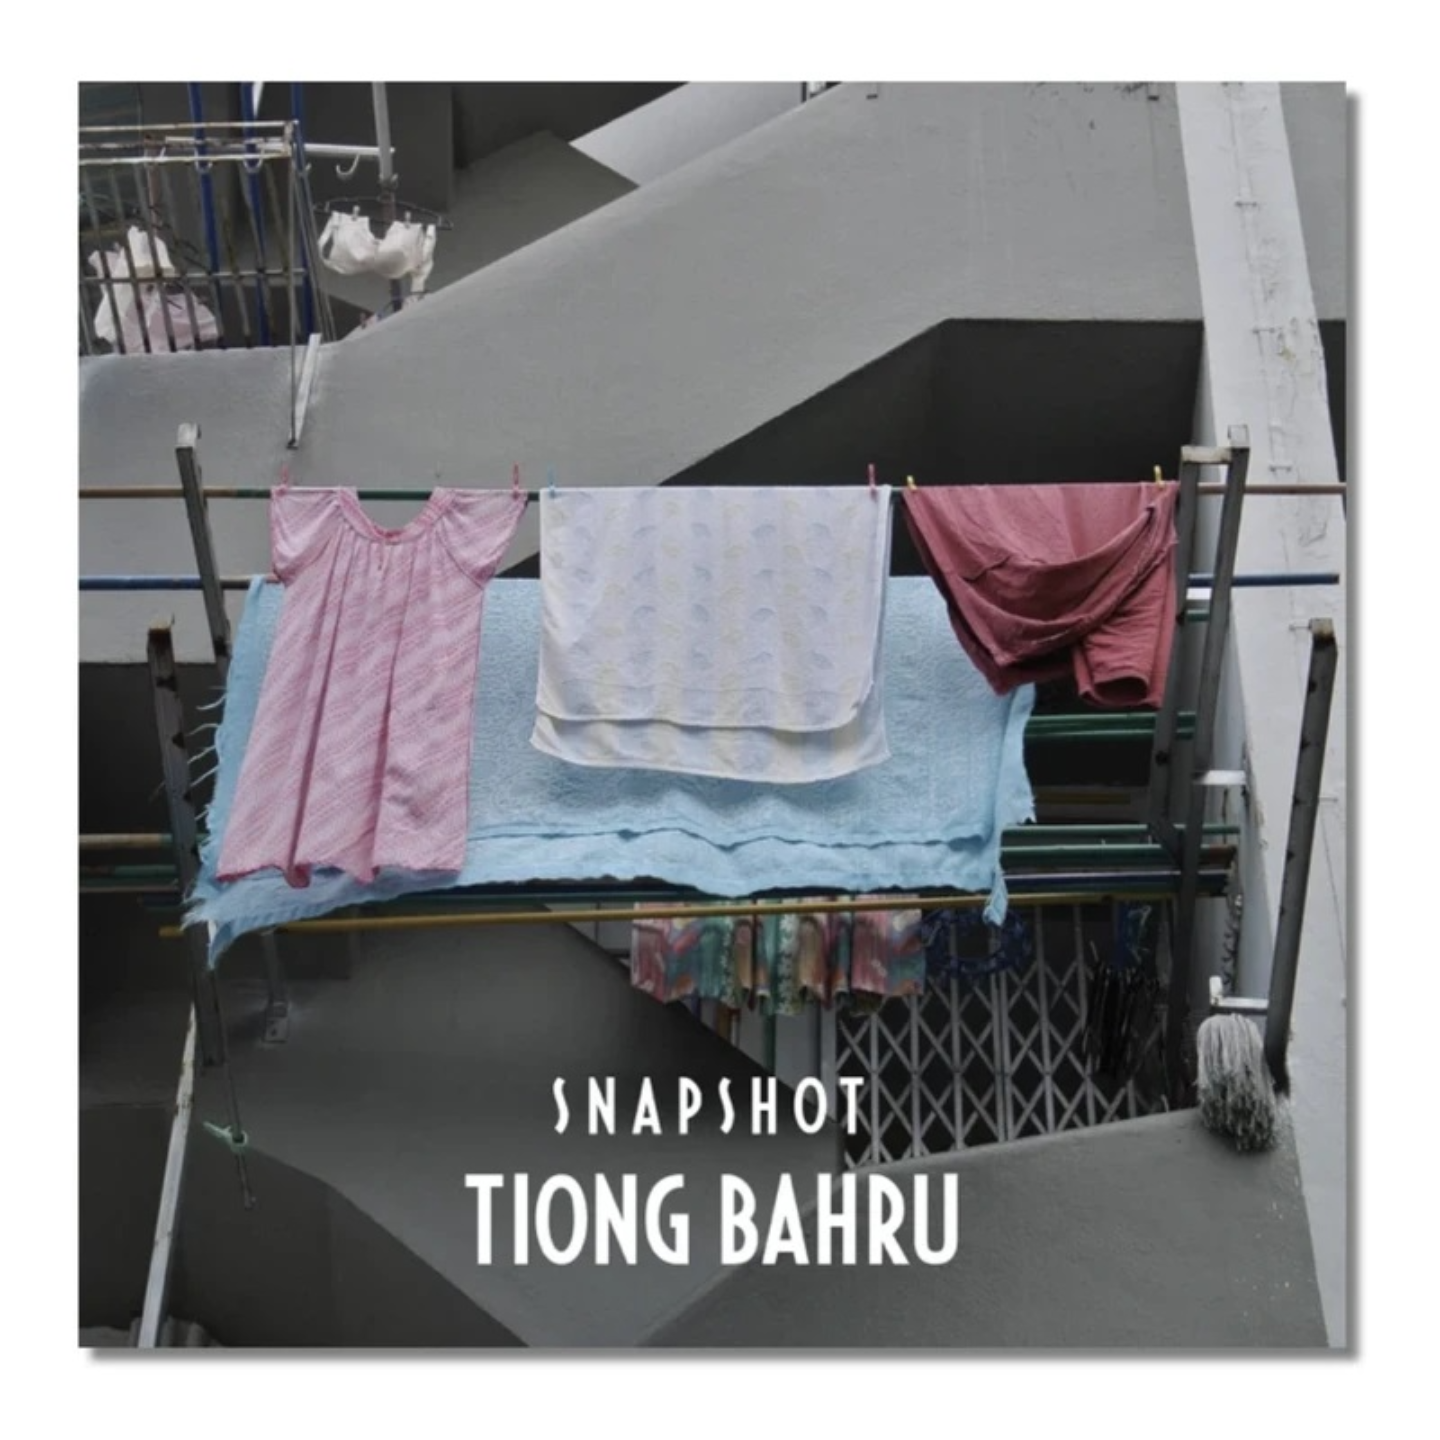 Photo Book: SNAPSHOT - Tiong Bahru